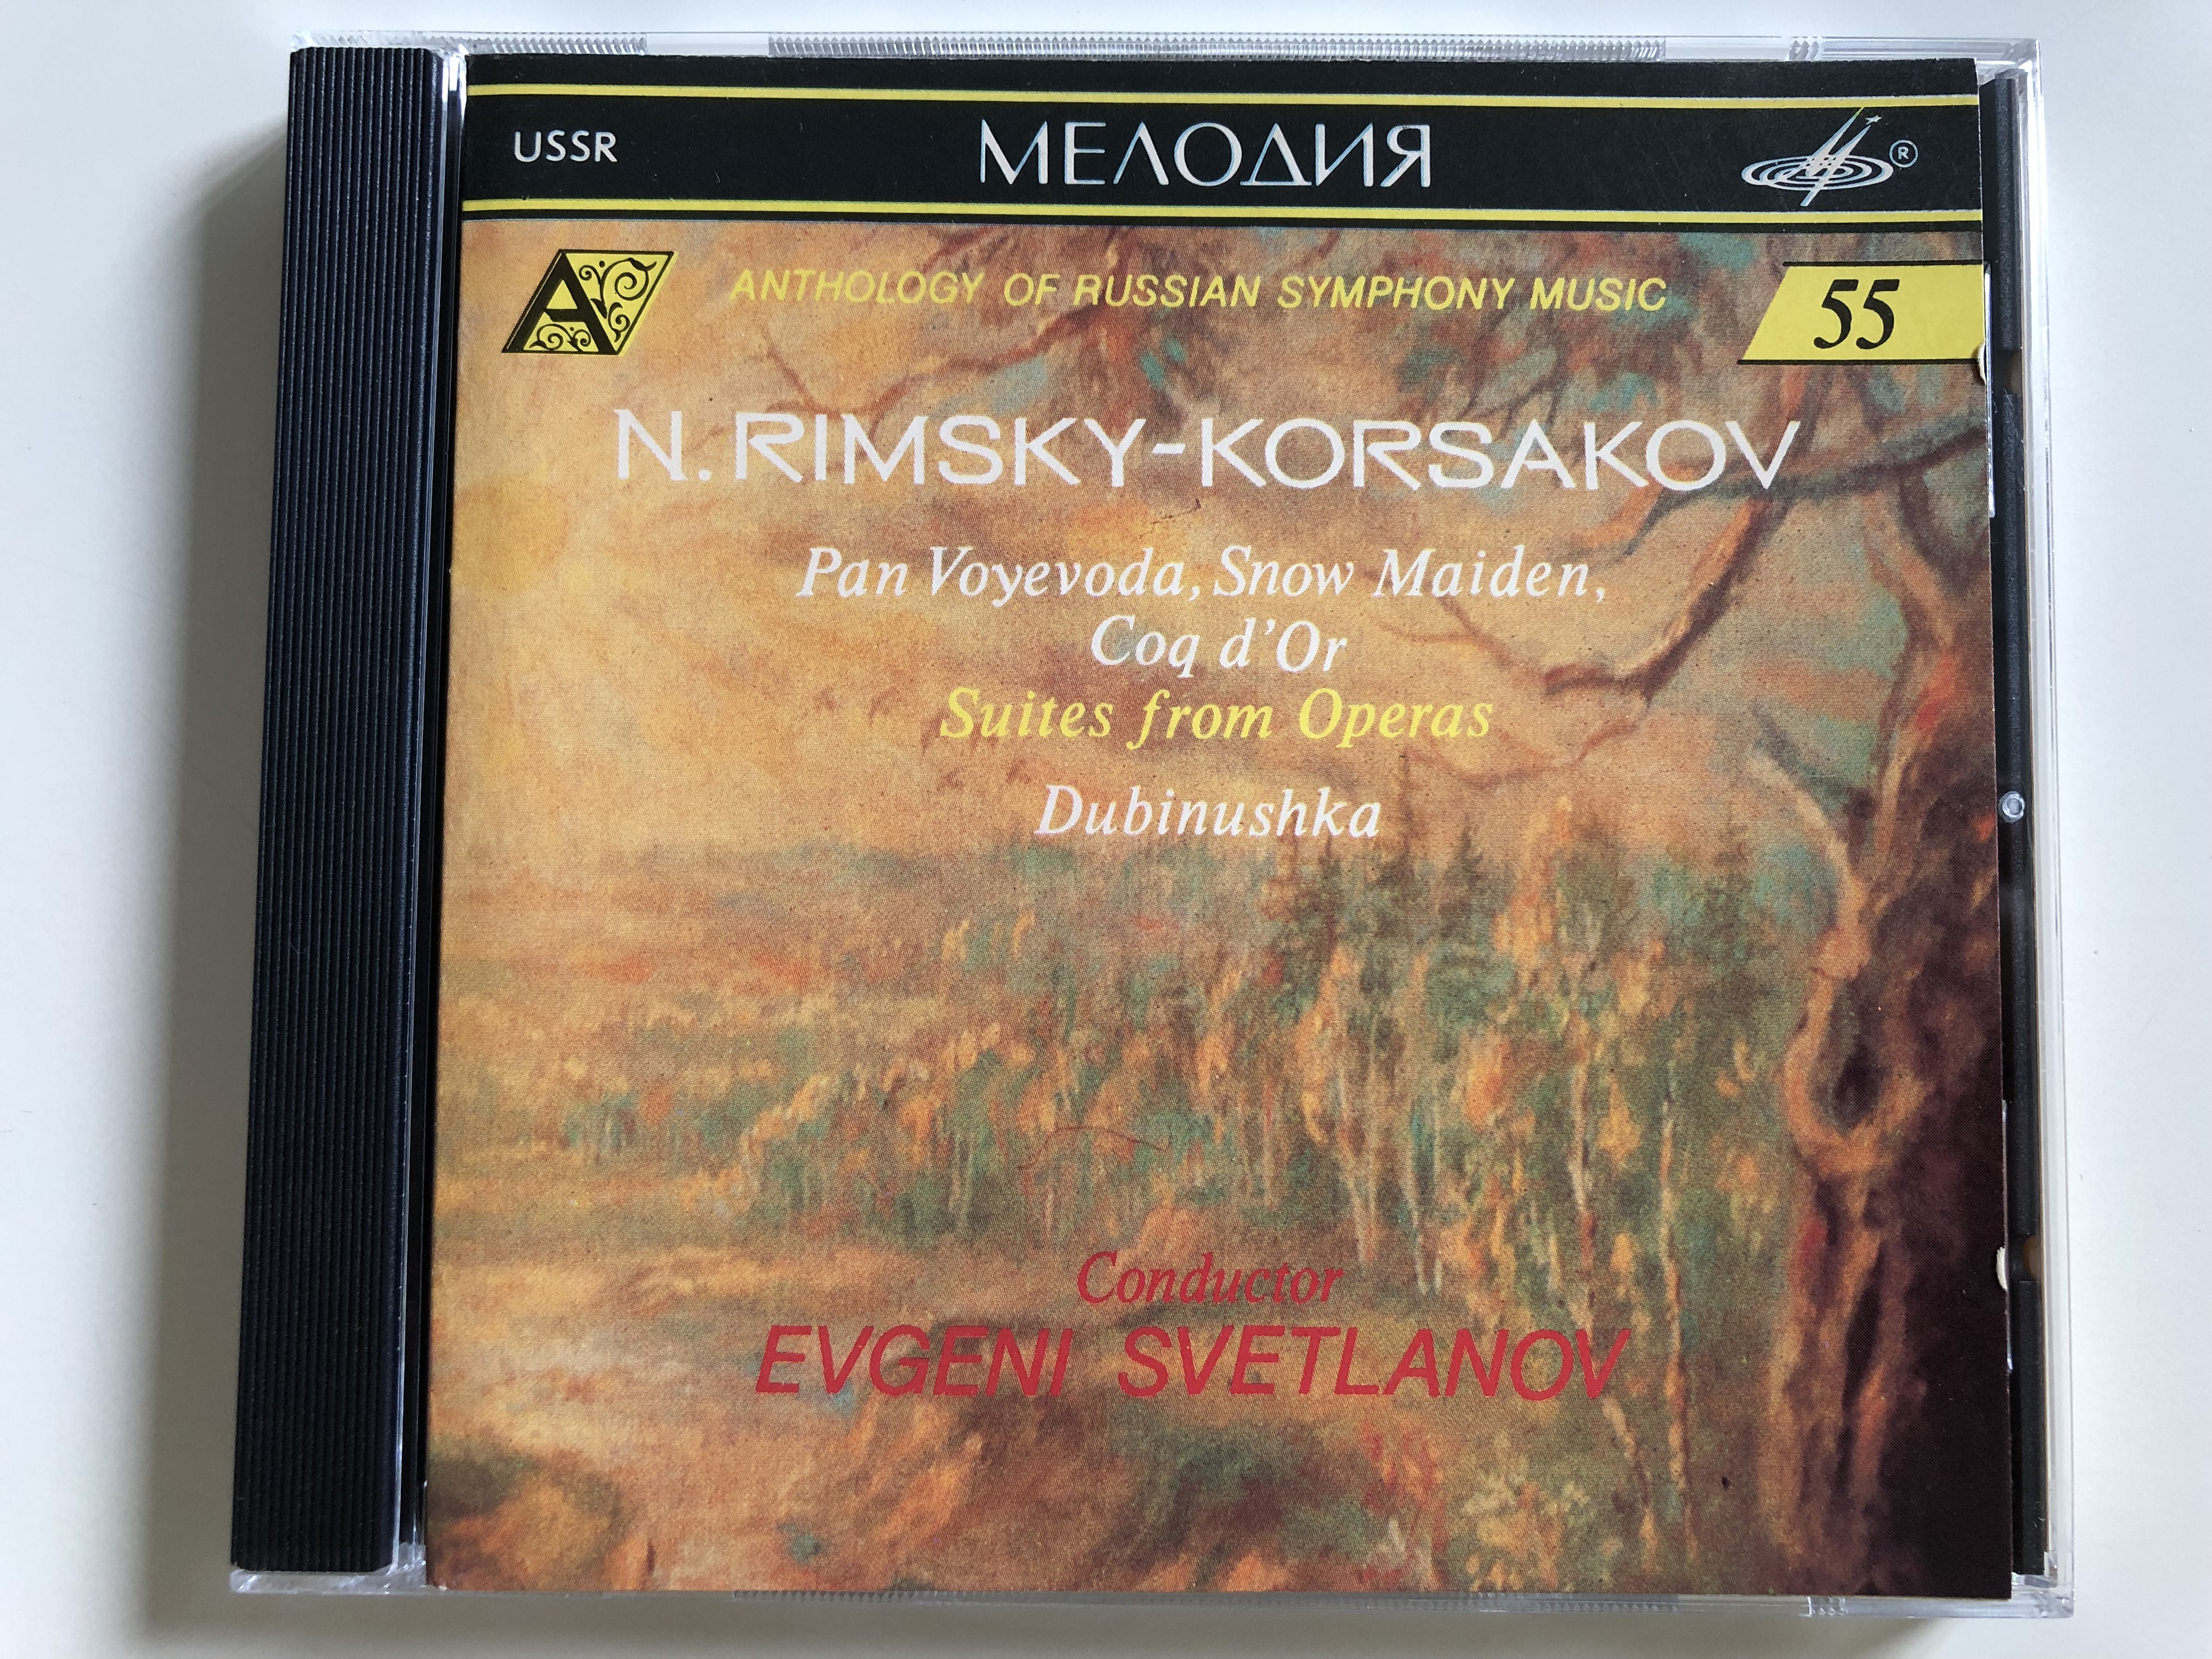 n.-rimsky-korsakov-pan-voyevoda-snow-maiden-coq-d-or-suites-from-operas-dubinushka-conductor-evgeni-svetlanov-anthology-of-russian-symphony-music-55.-melodiya-audio-cd-1991-1-.jpg